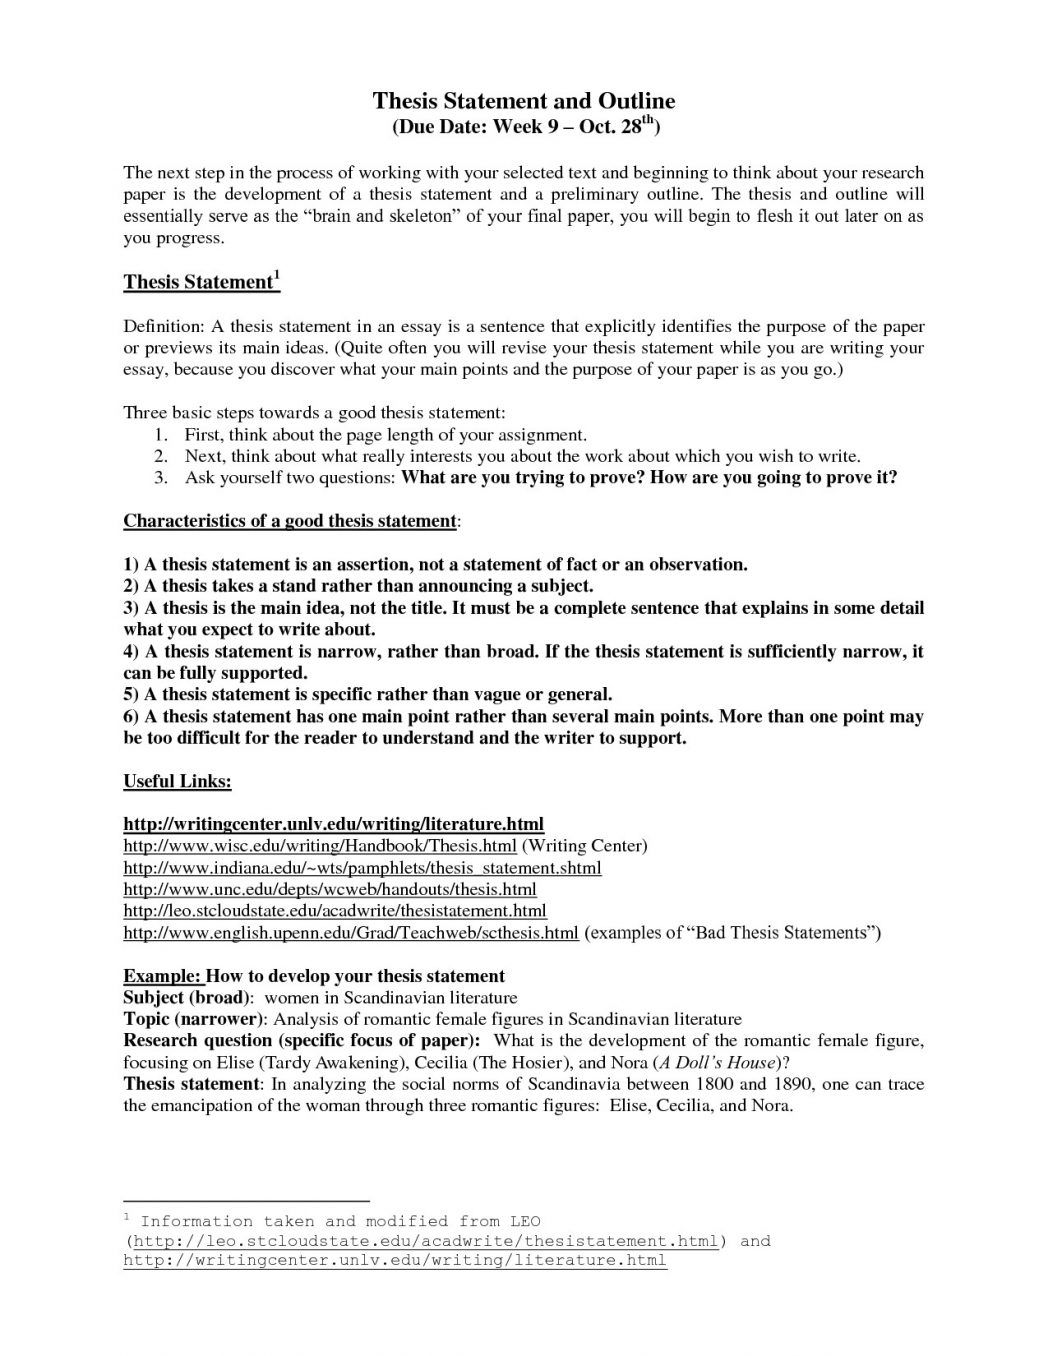 020 Thesis Statementamples For Essays Cute Easy Pics Your Argumentative Writing Good Persuasive Essay H Compare Contrast How To Write An Informativeample Of Do You Impressive Statement Examples Philosophy Papers Psychology Analytical Full